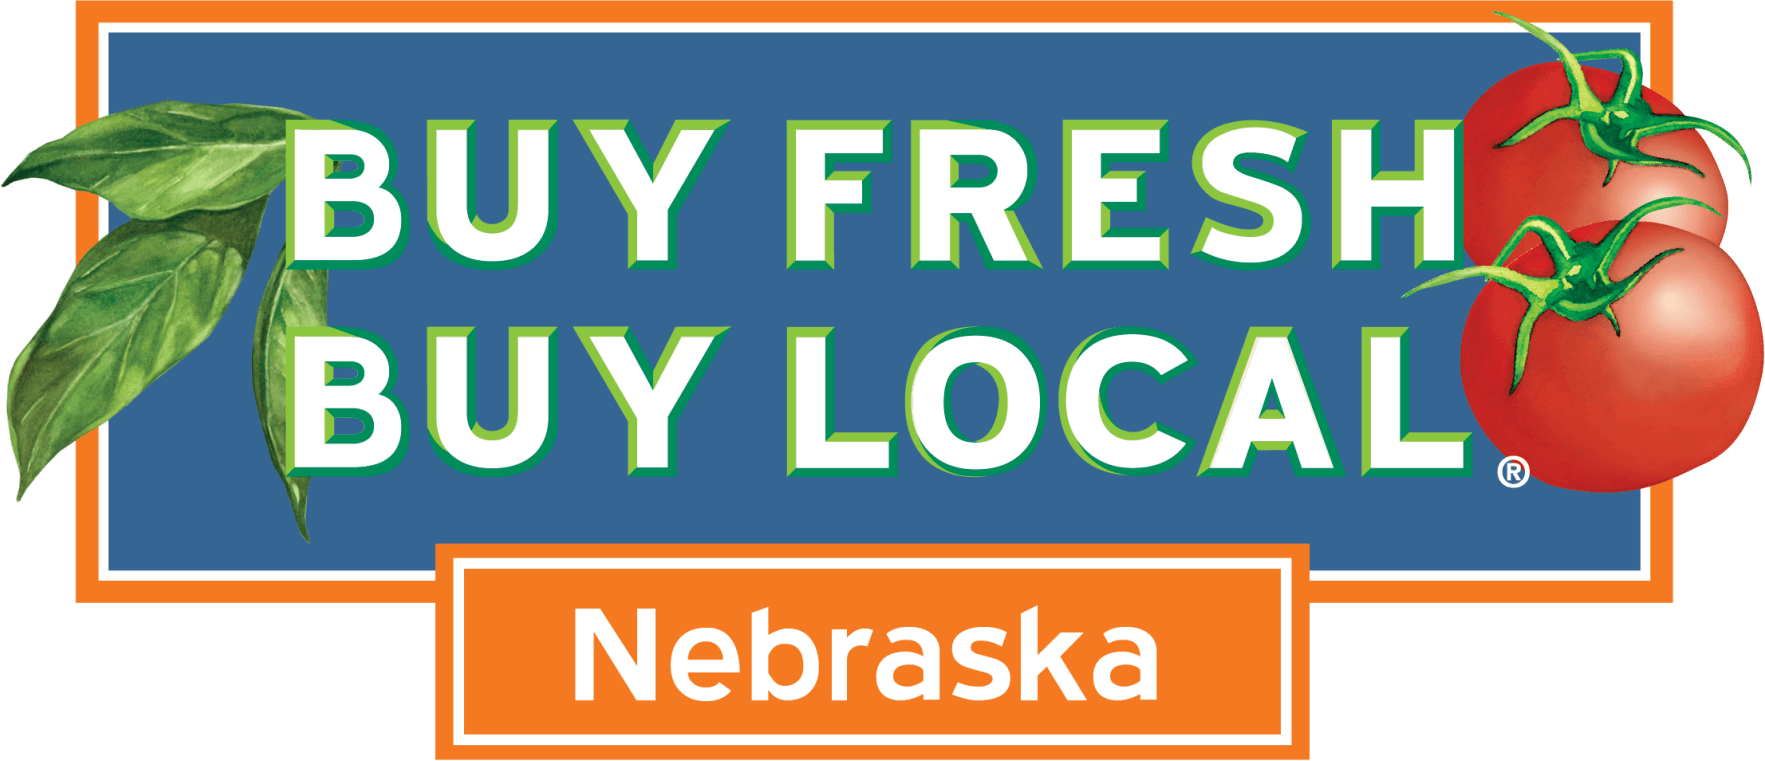 Buy Fresh Buy Local Nebraska